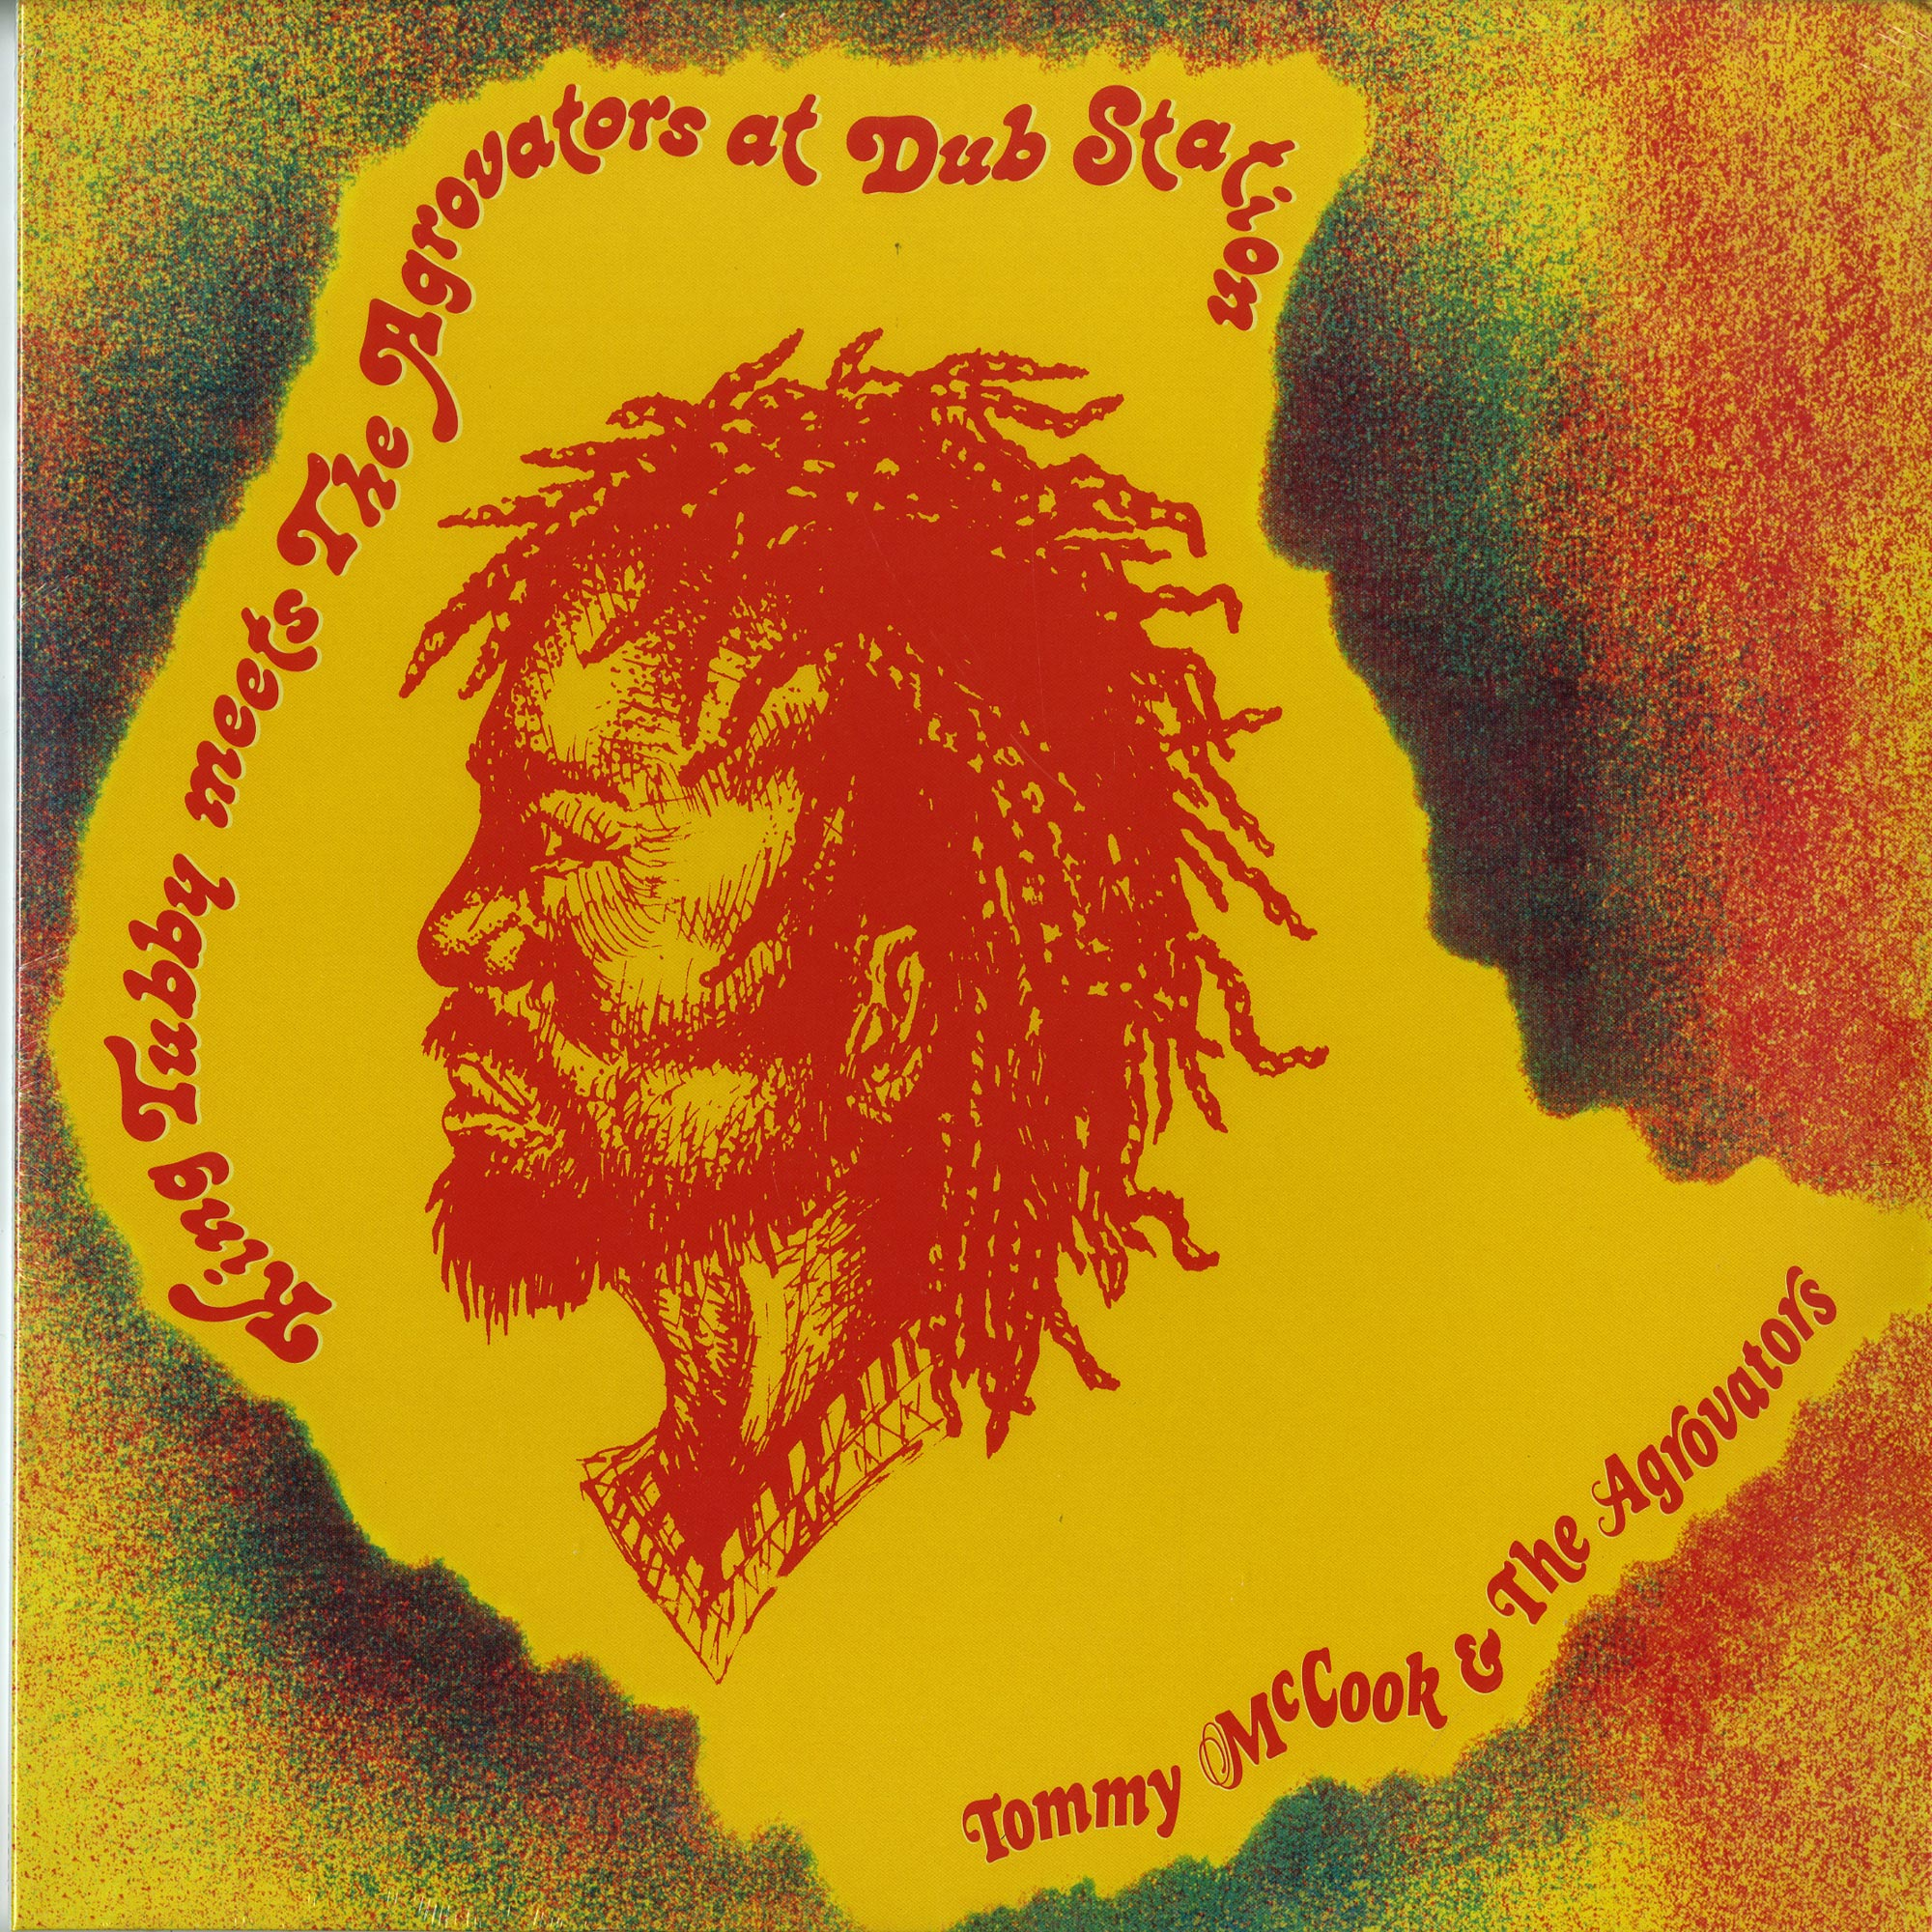 Tommy Mccook & The Aggrovators - KING TUBBY MEETS THE AGGROVATORS AT DUB STATION